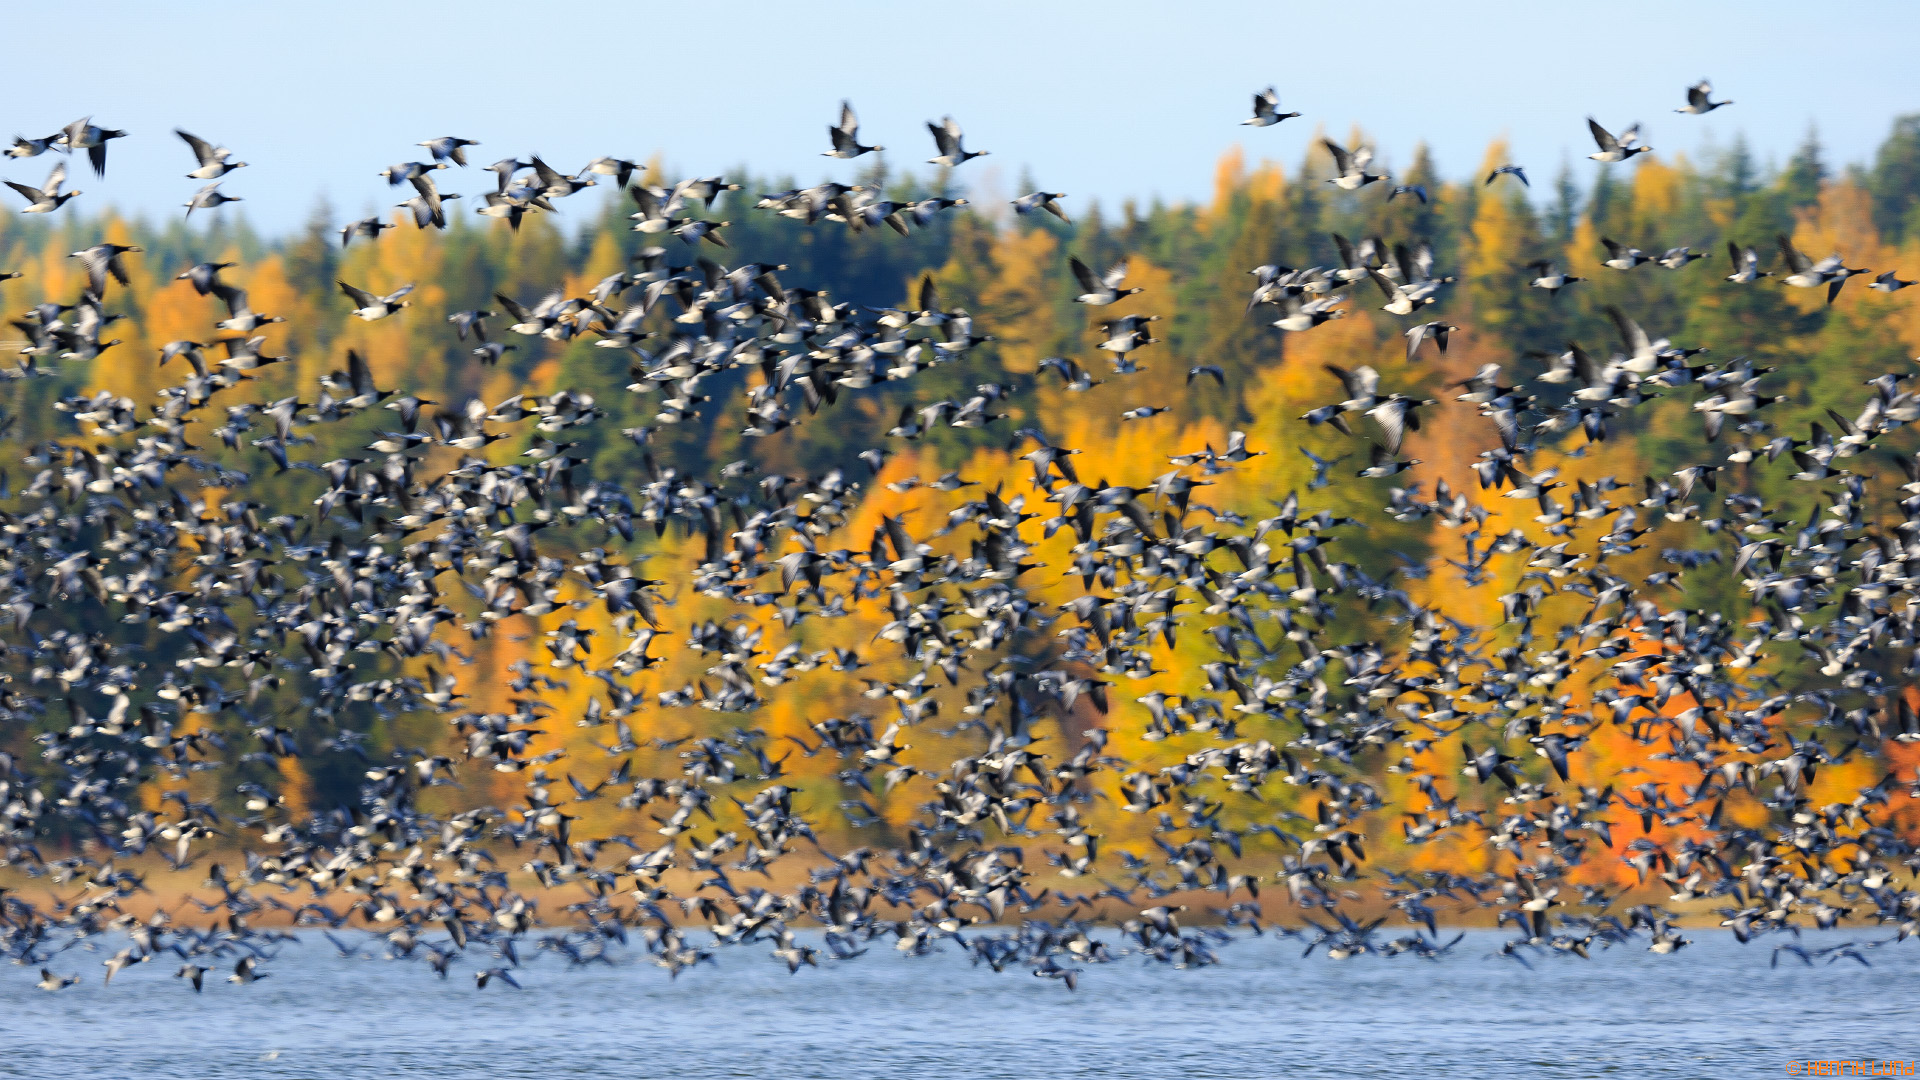 Thousands of barnacle geese gathering on the lake in the autumn afternoon, Lappträsk, Finland, October 2013.